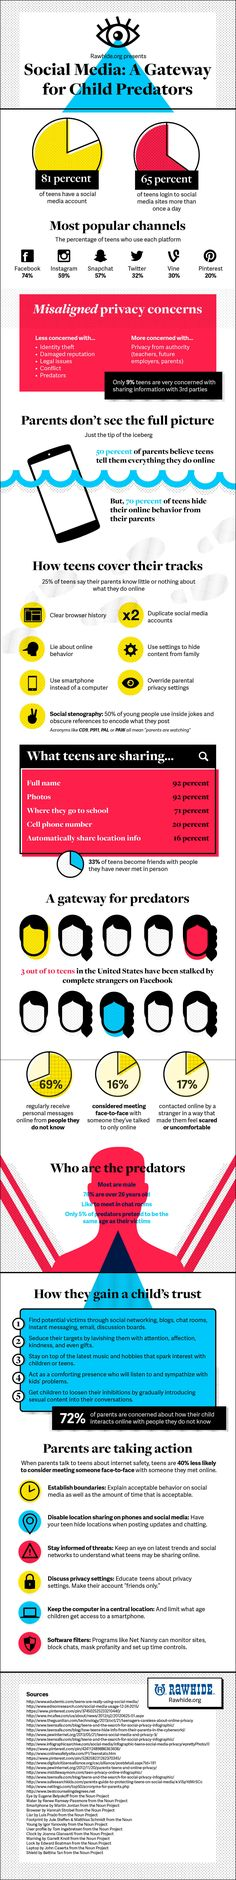 Facebook, Instagram, Snapchat, Twitter, Pinterest: A Gateway for Child Predators - #infographic